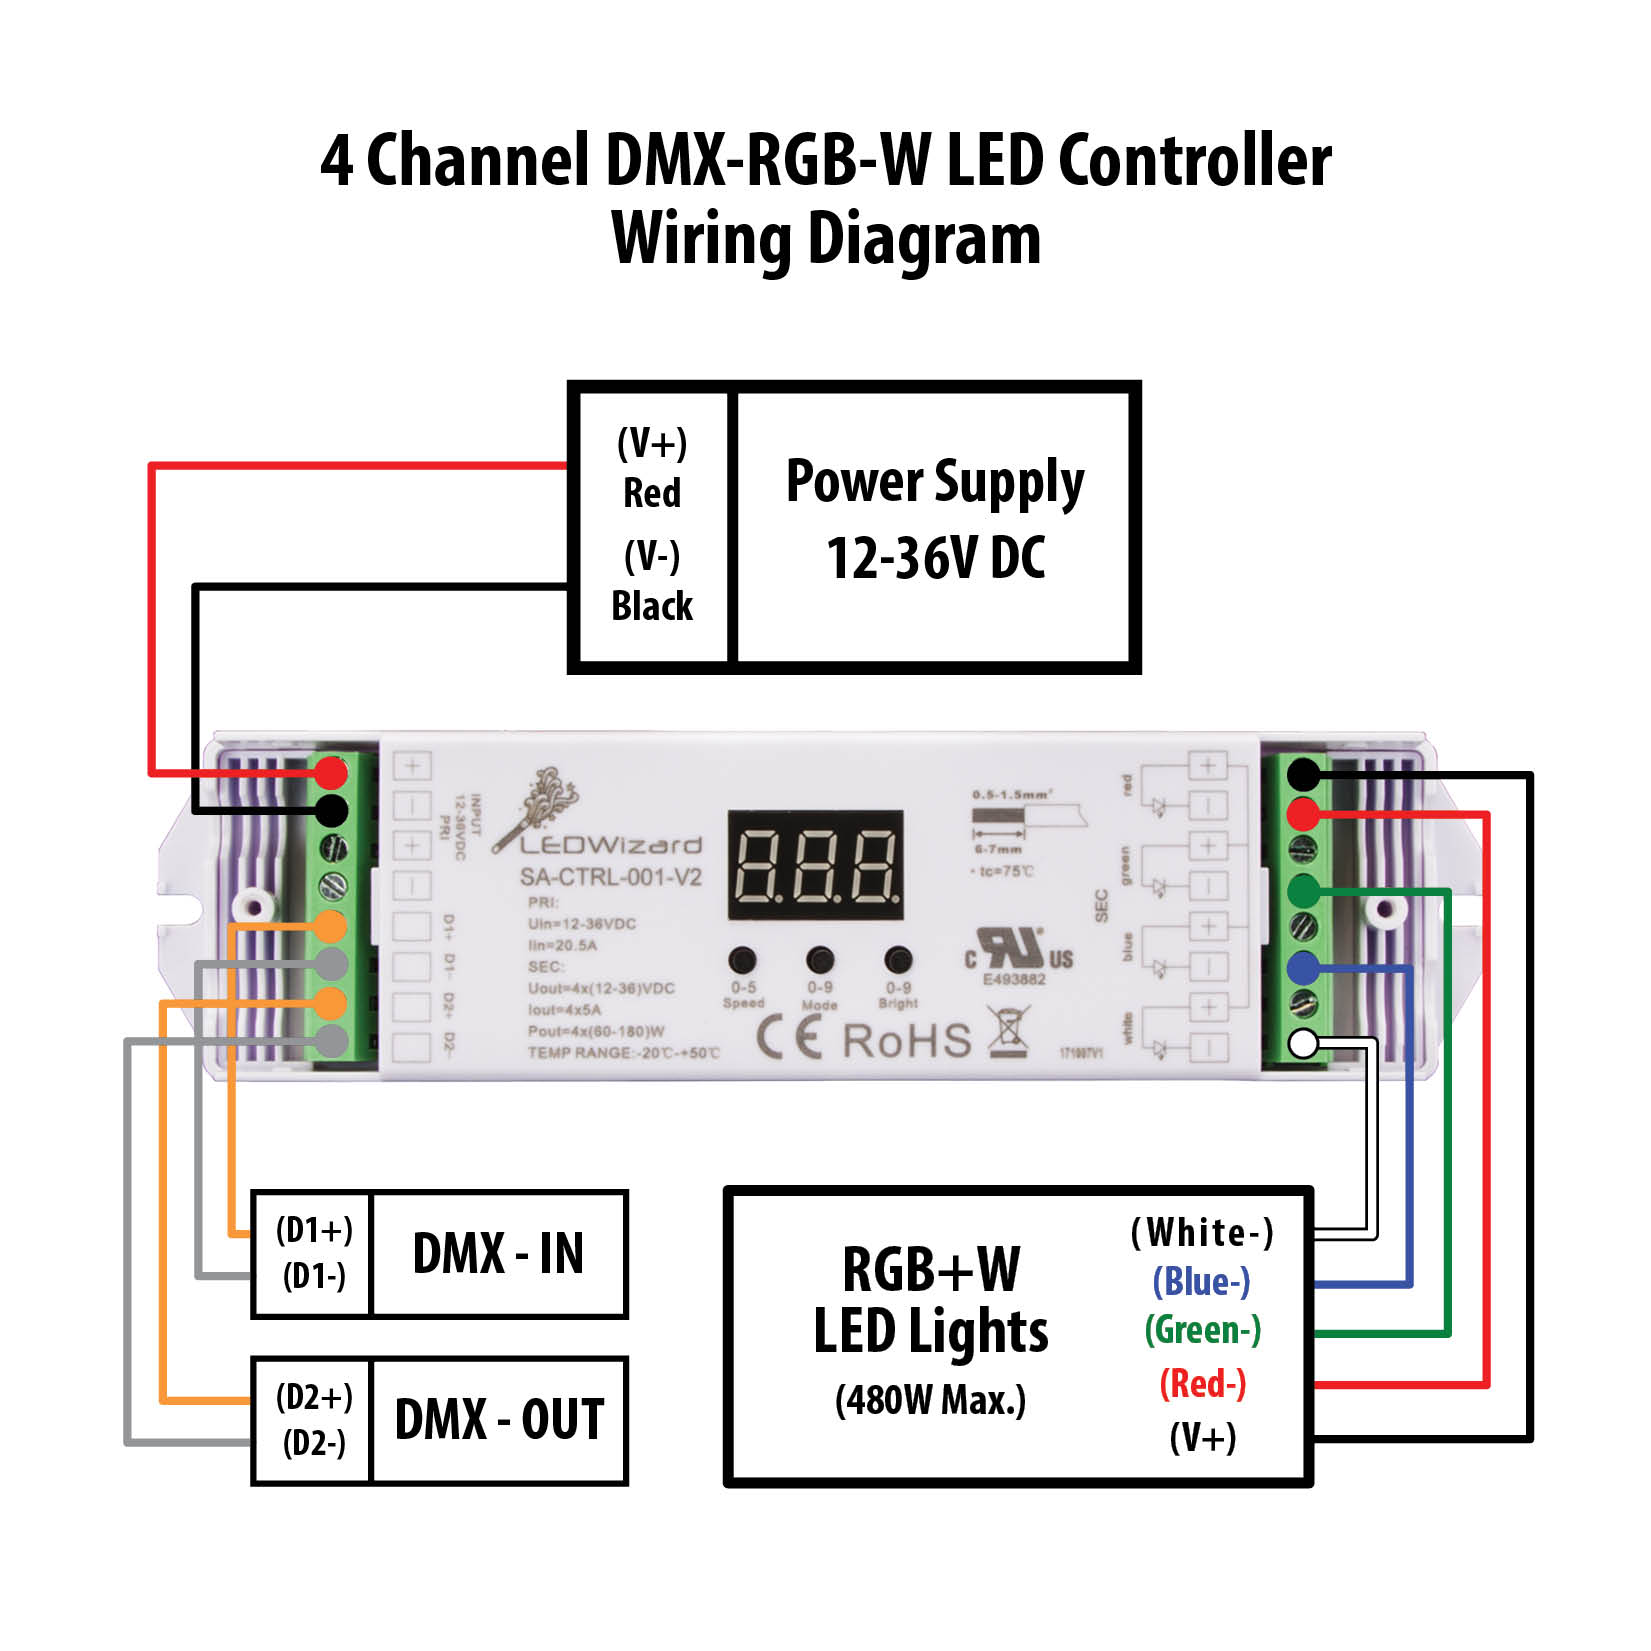 hight resolution of manual for 4 channel dmx rgb w led controller